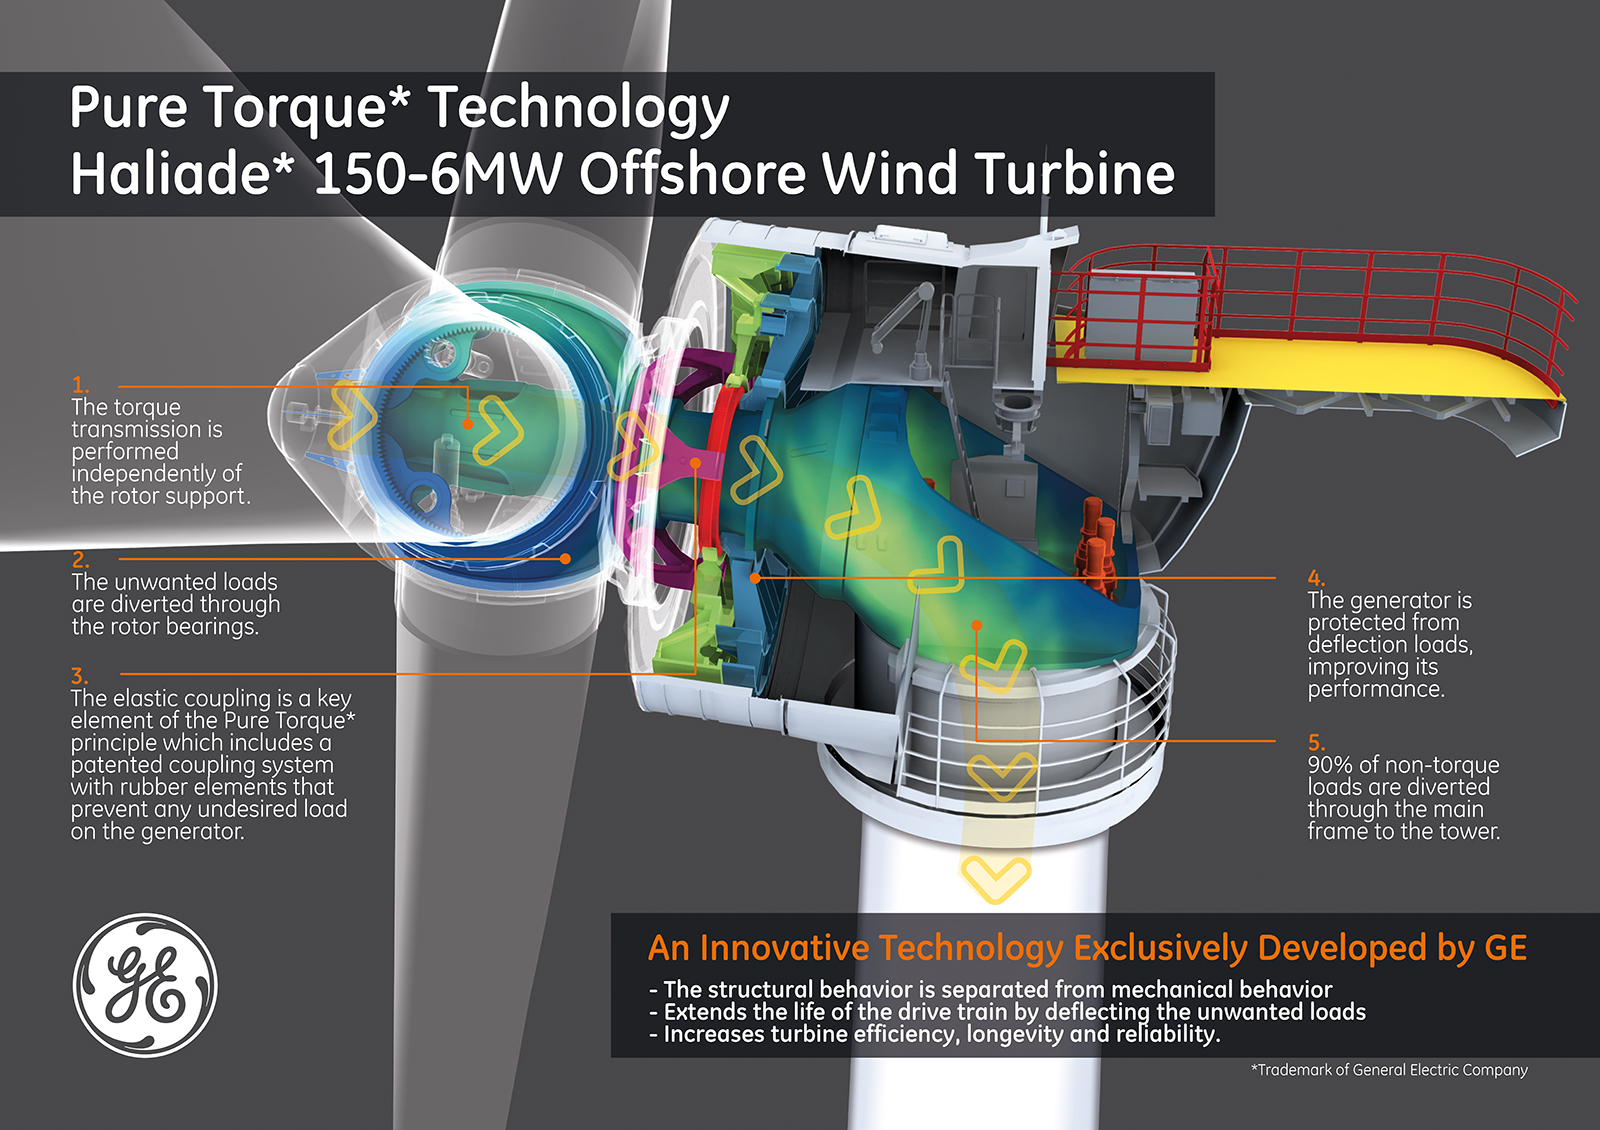 GE-Poster-Wind-Offshore-Haliade-Pure-Torque-Low-Res